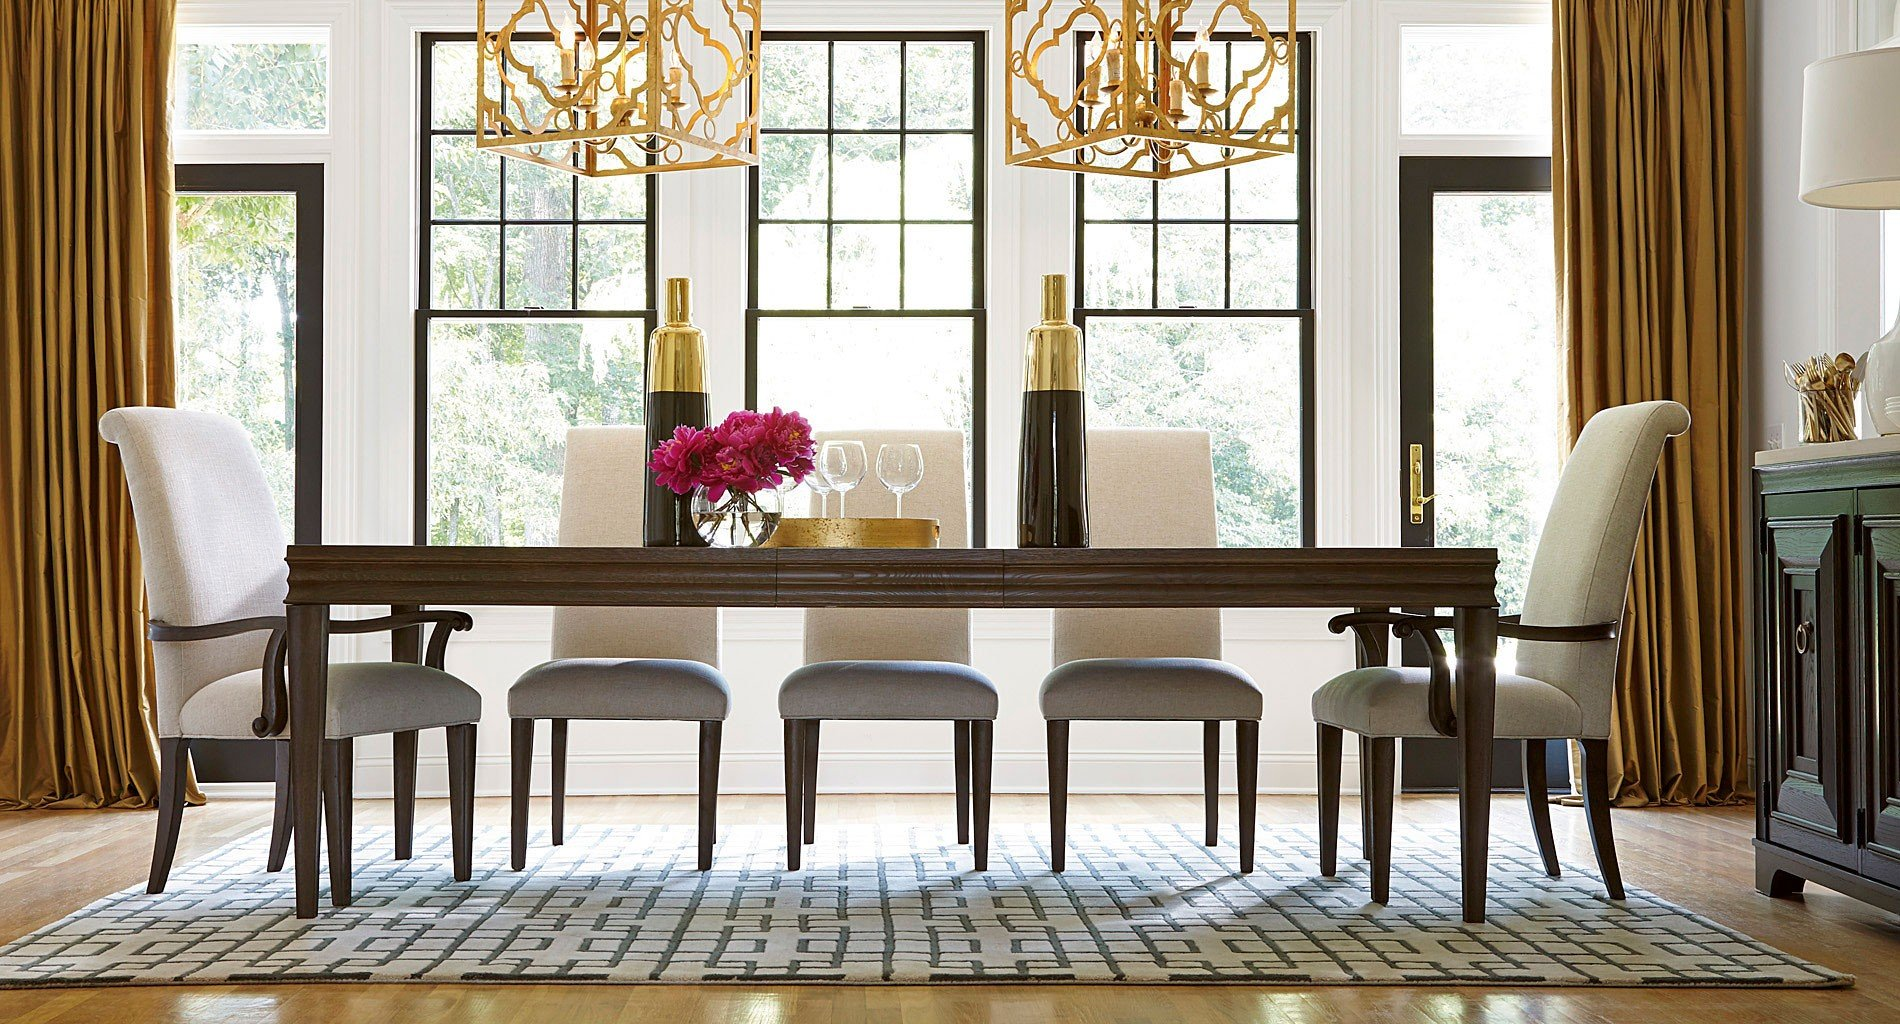 California Dining Room Set W/ Upholstered Chairs (Hollywood Hills)